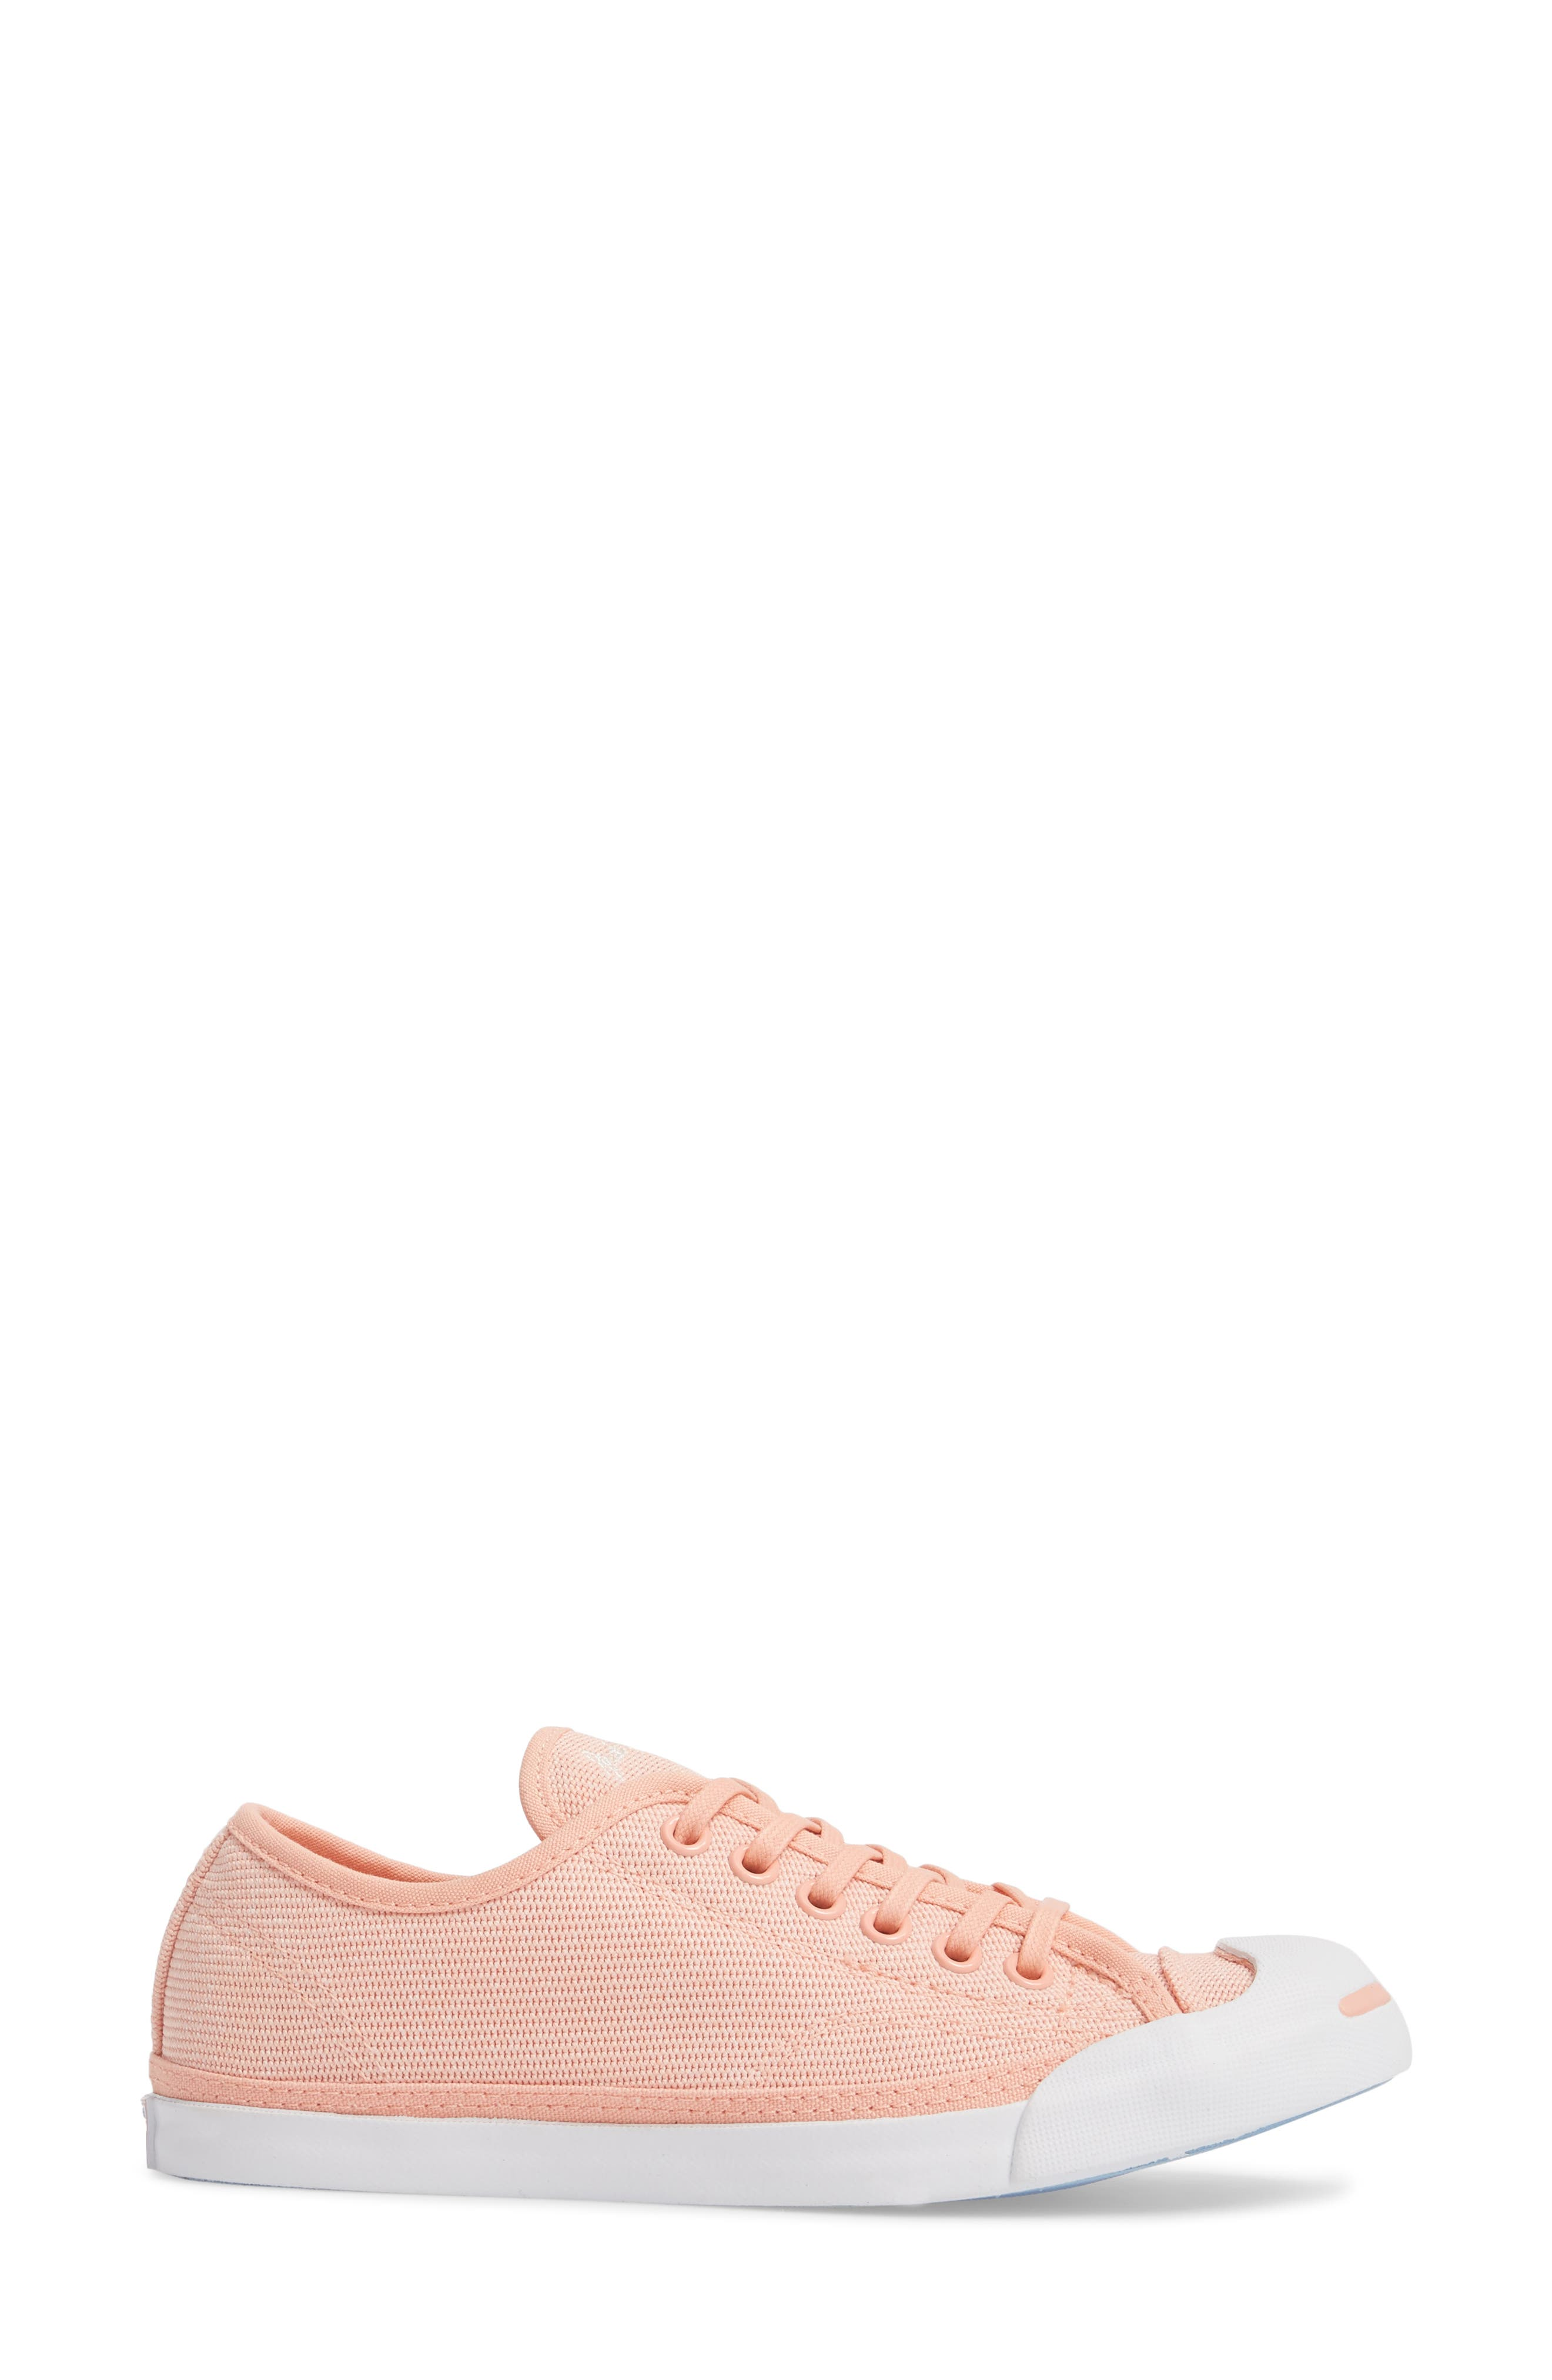 ,                             Jack Purcell Low Top Sneaker,                             Alternate thumbnail 63, color,                             950